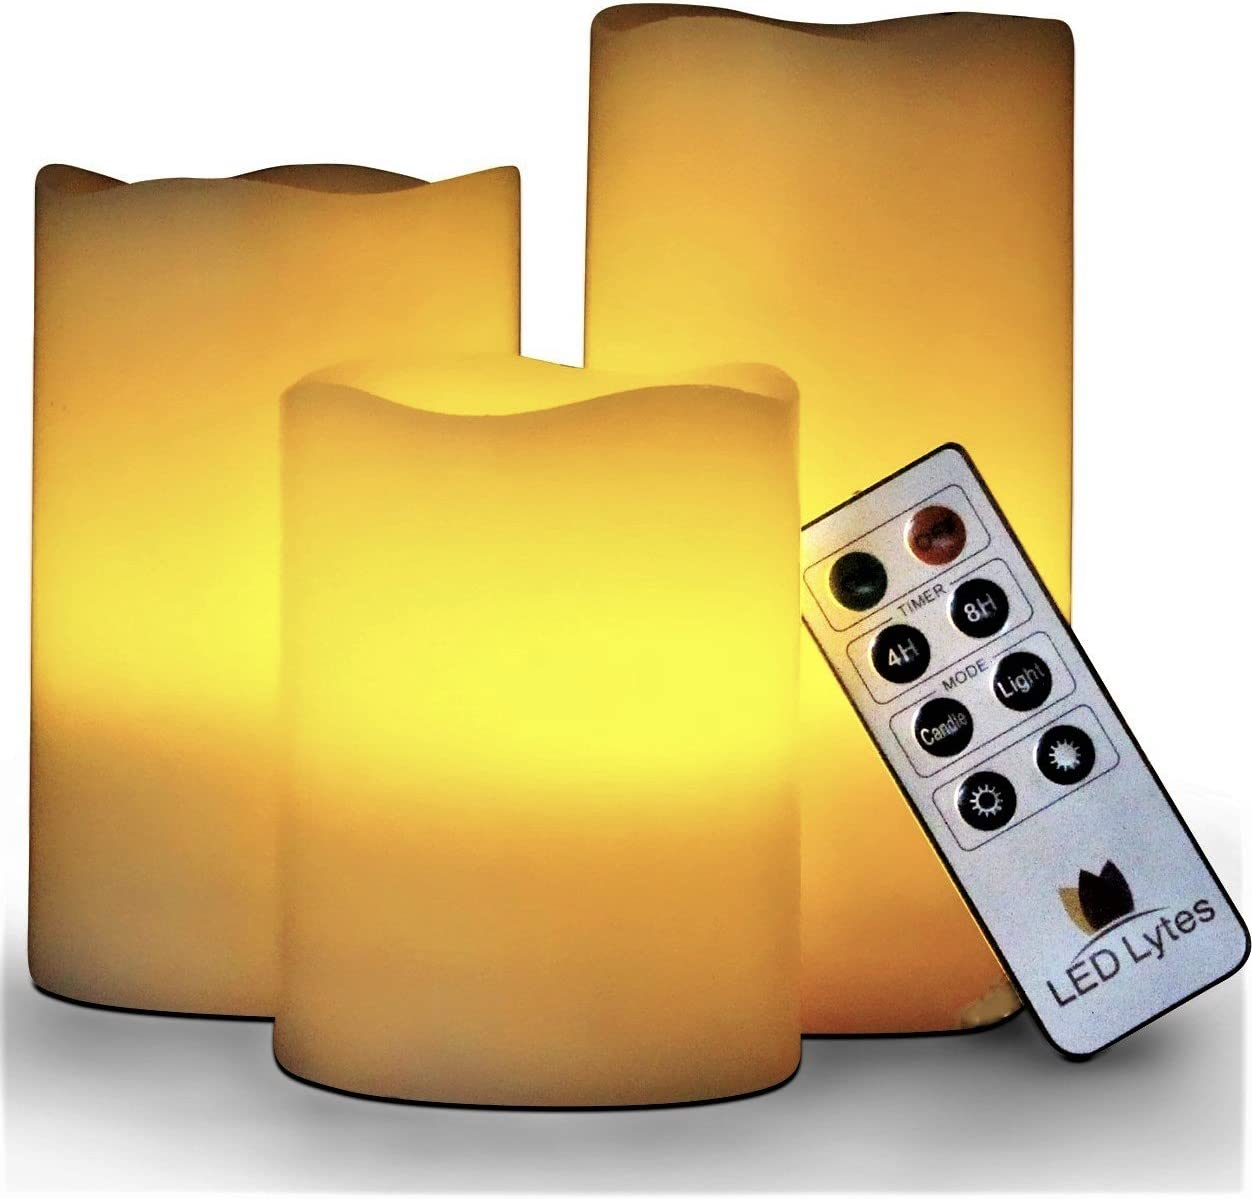 LED Lytes Battery Operated Candles, Set of 3 Ivory Wax Pillar LED Candles with Flickering Amber Flame and Timer Remote Control Battery Operated Candle for Decorations and Gifts